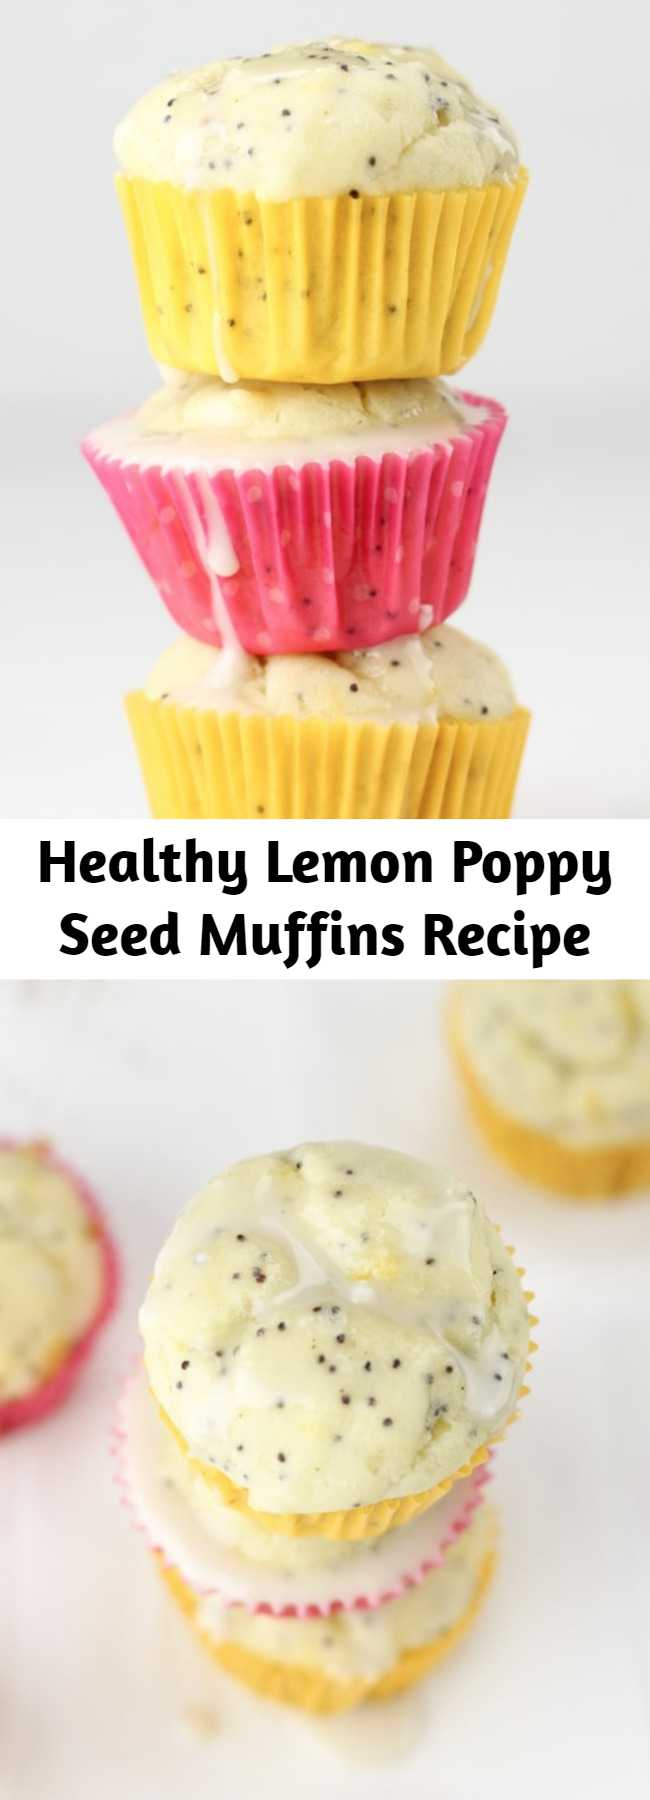 Healthy Lemon Poppy Seed Muffins Recipe - Healthy Lemon Poppy Seed Muffins recipe is super moist made with natural ingredients, gluten-free, dairy-free and low-sugar. Ultimate delicious plus healthy recipe for breakfast. Just 86 calories per muffin! It is the ultimate, delicious and healthy recipe for breakfast.